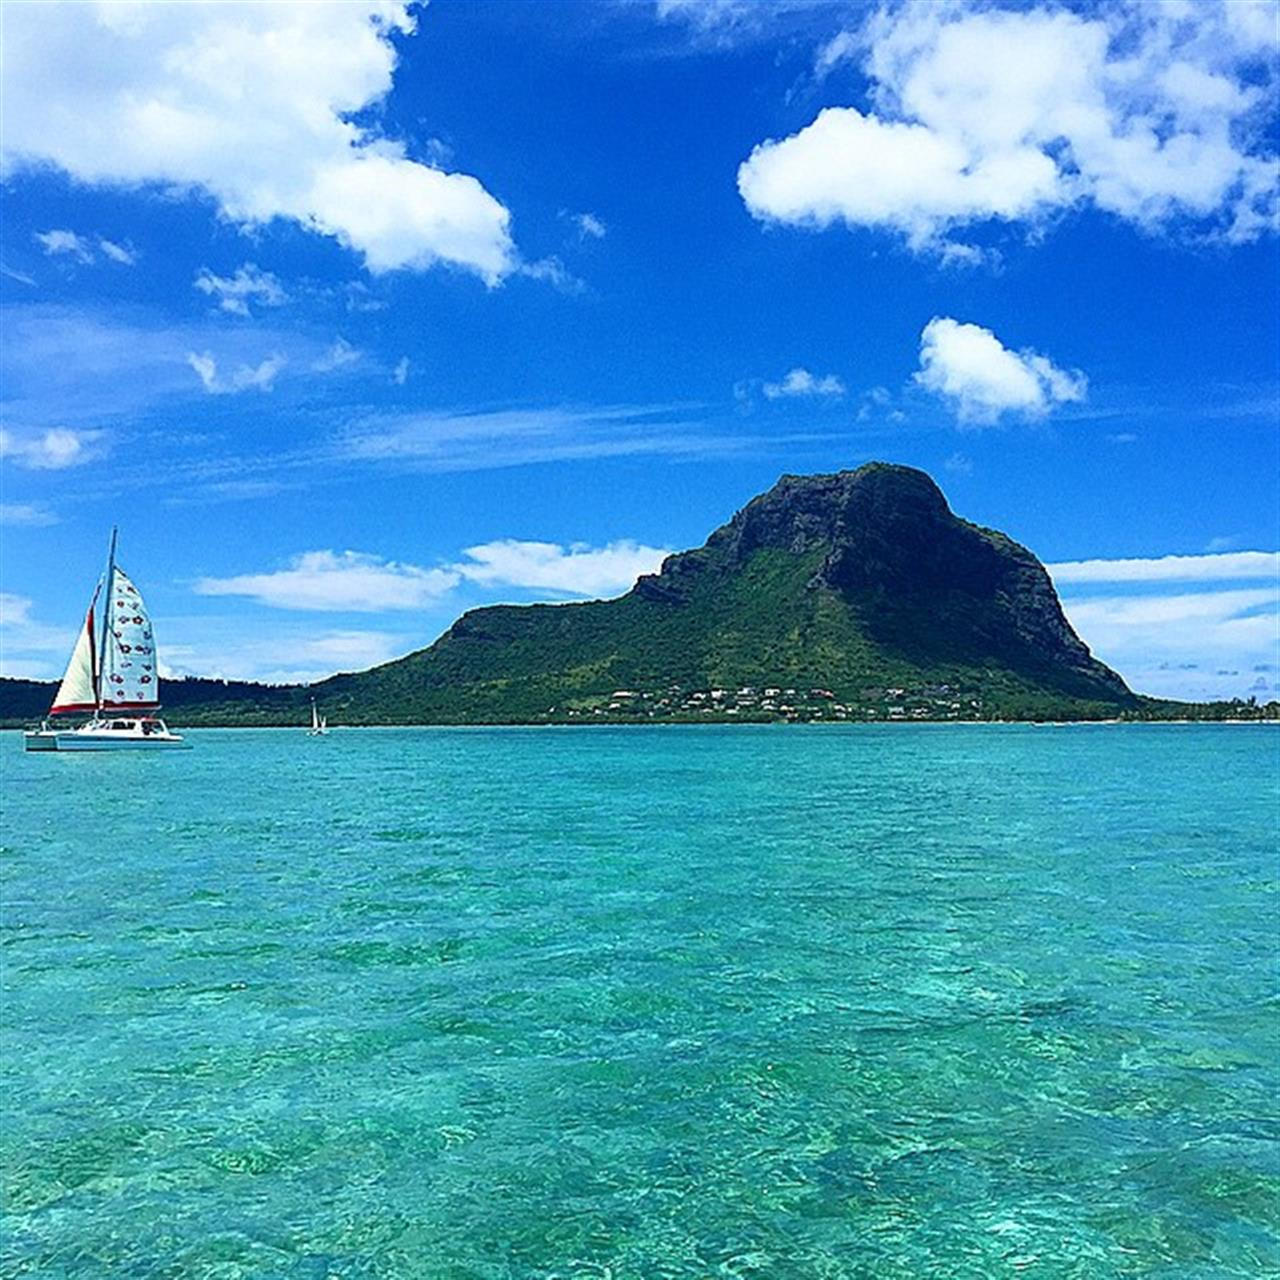 #LeMorne #LeadingRelocal #mauritius #catamaran